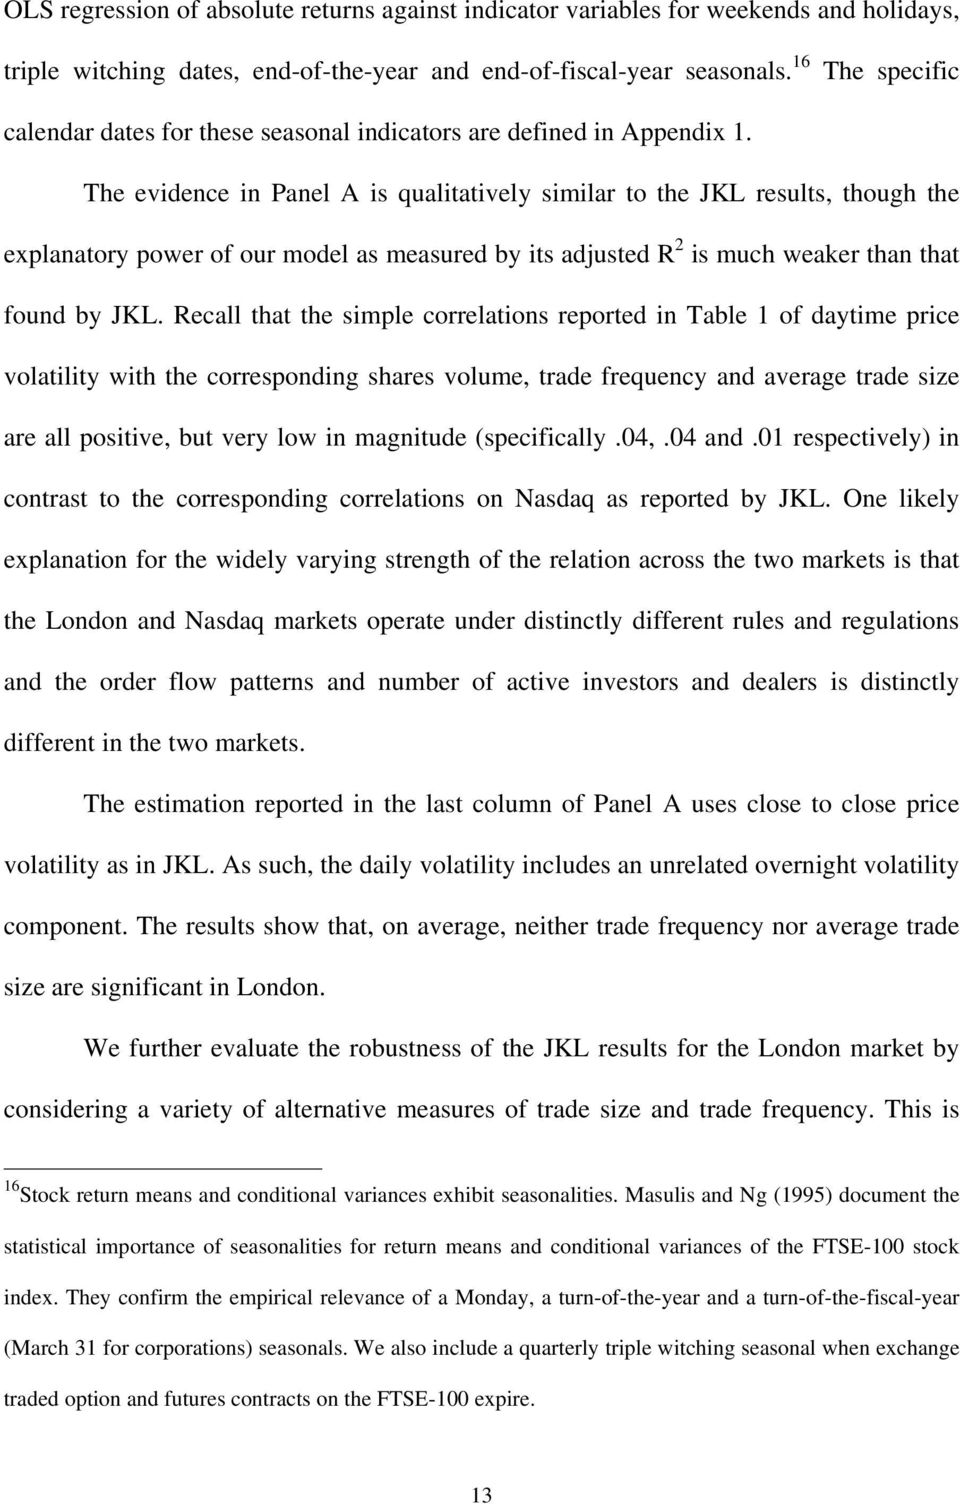 The evidence in Panel A is qualitatively similar to the JKL results, though the explanatory power of our model as measured by its adjusted R 2 is much weaker than that found by JKL.